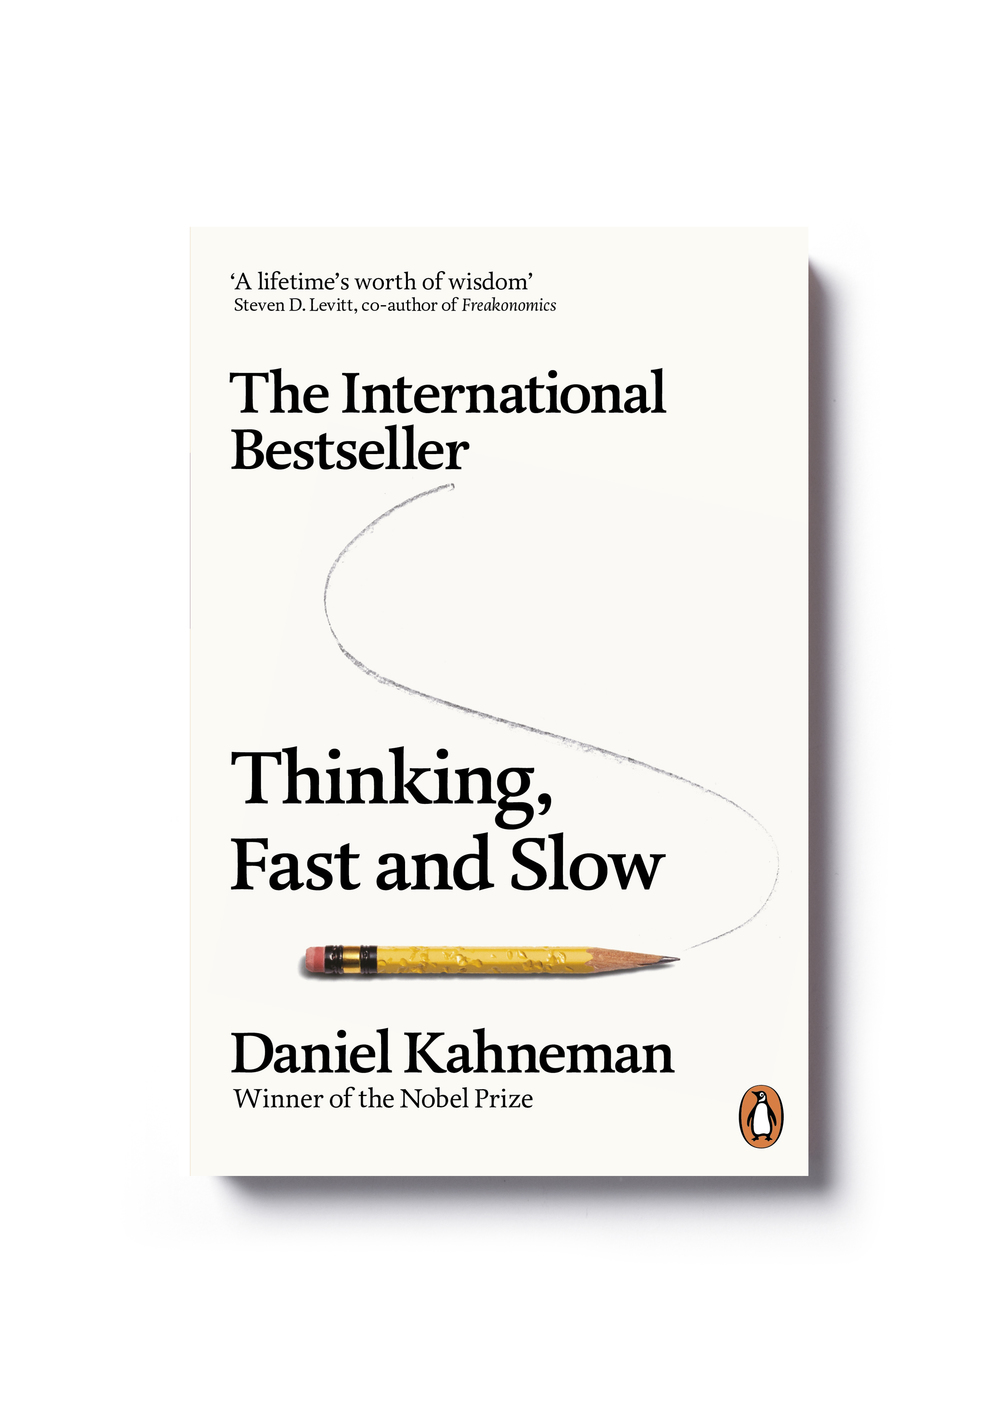 Thinking Fast & Slow by Daniel Kahneman - Art Direction: Jim Stoddart Design: Yes Studio